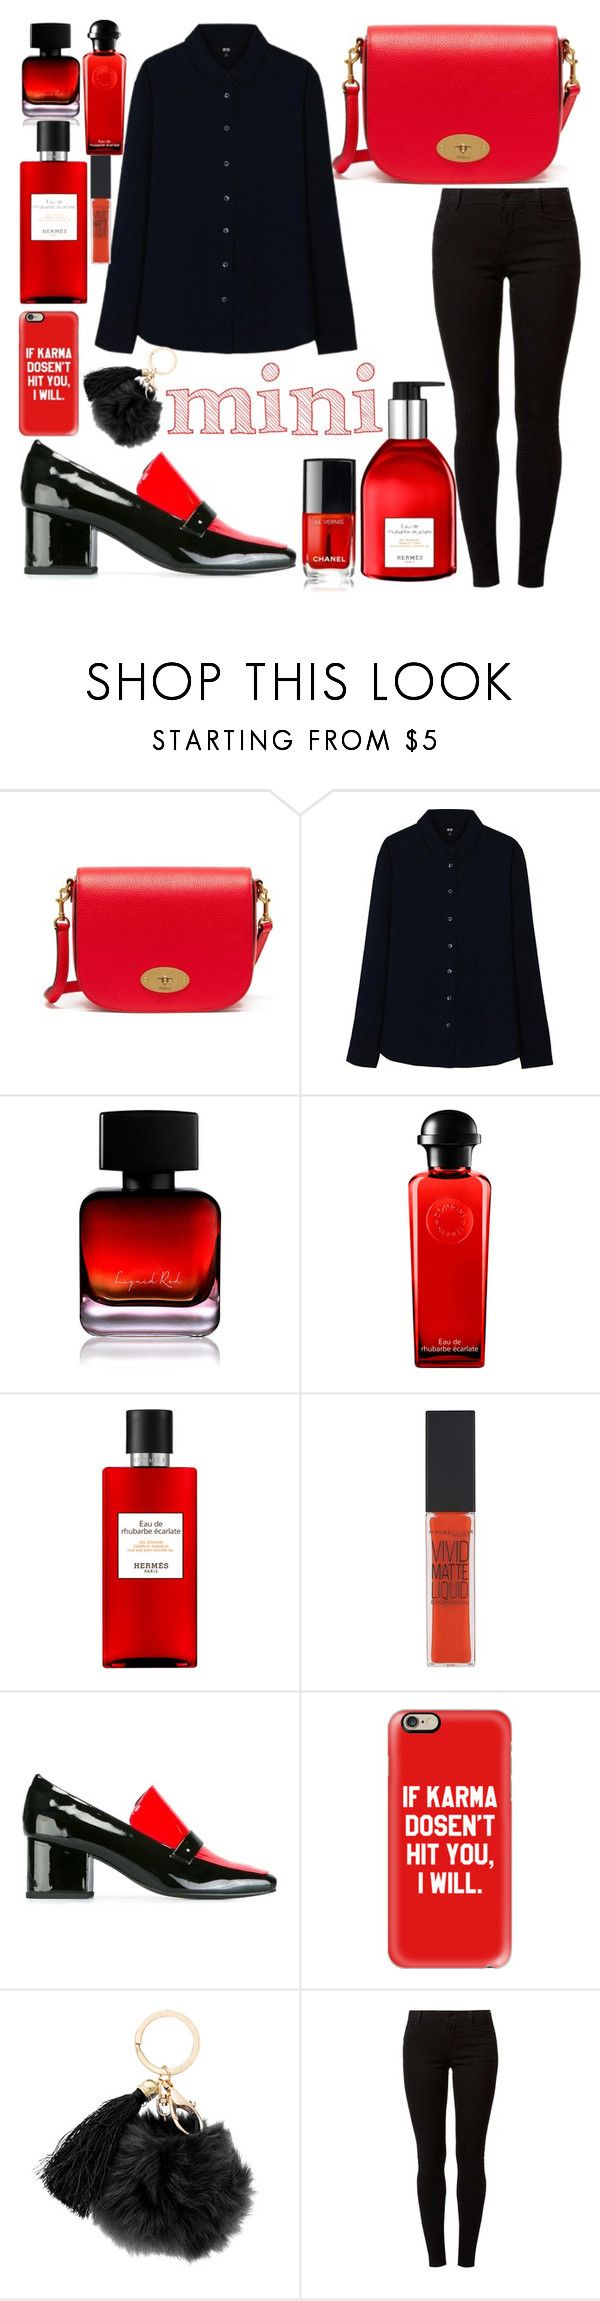 """""""mini handbag"""" by chantal-07 ❤ liked on Polyvore featuring Mulberry, Uniqlo, The Collection by Phuong Dang, Hermès, Maybelline, Dorateymur, Casetify, Dorothy Perkins, black and red"""